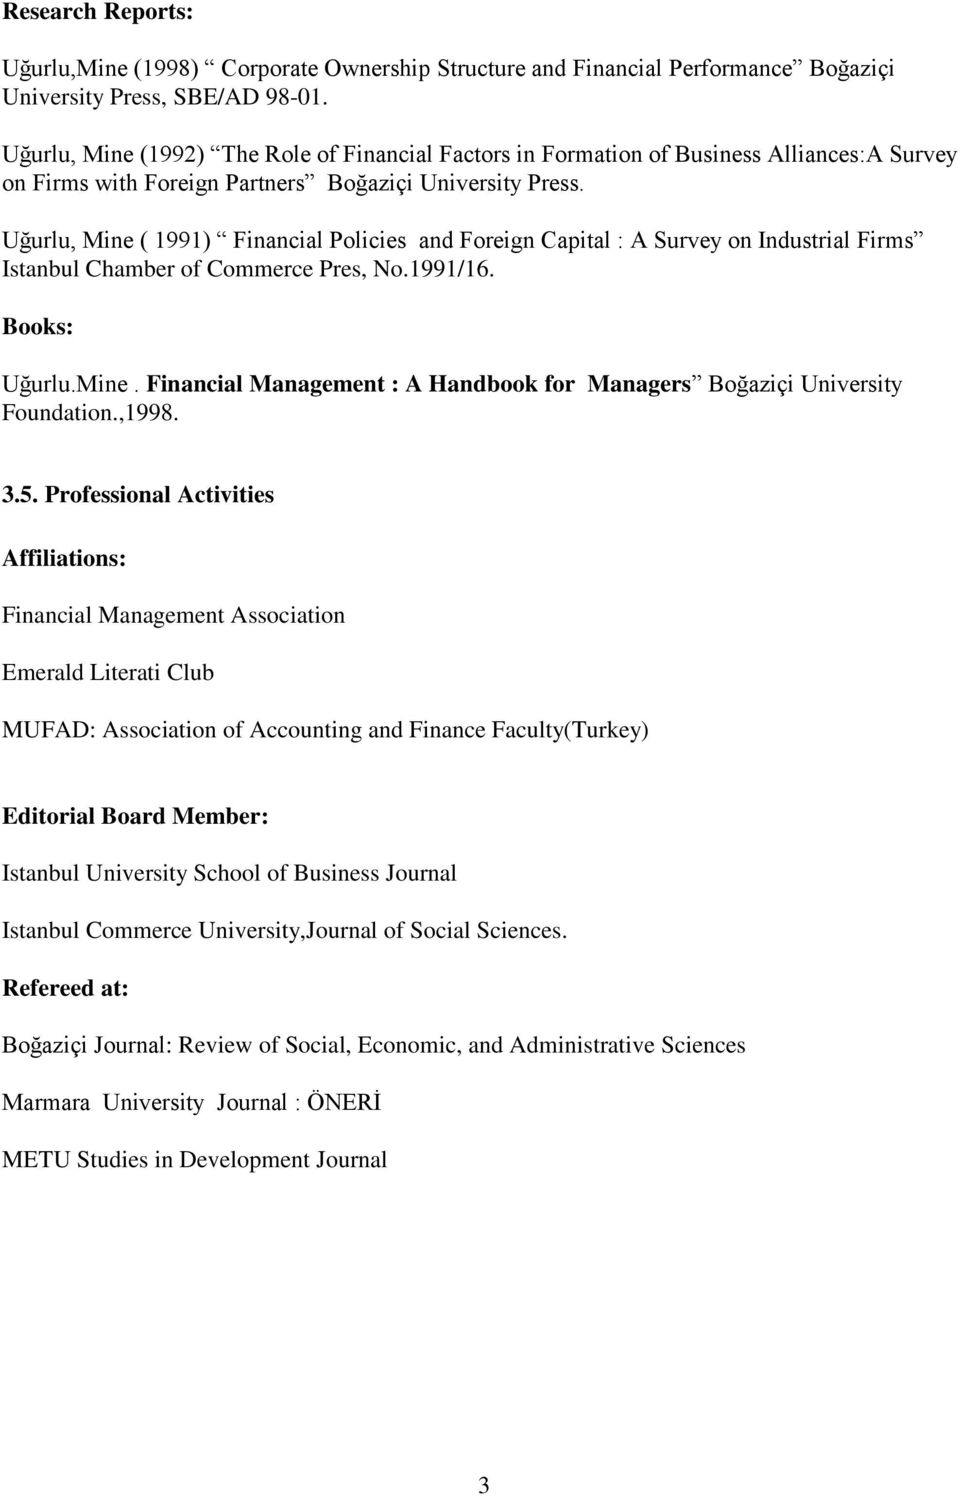 Uğurlu, Mine ( 1991) Financial Policies and Foreign Capital : A Survey on Industrial Firms Istanbul Chamber of Commerce Pres, No.1991/16. Books: Uğurlu.Mine. Financial Management : A Handbook for Managers Boğaziçi University Foundation.